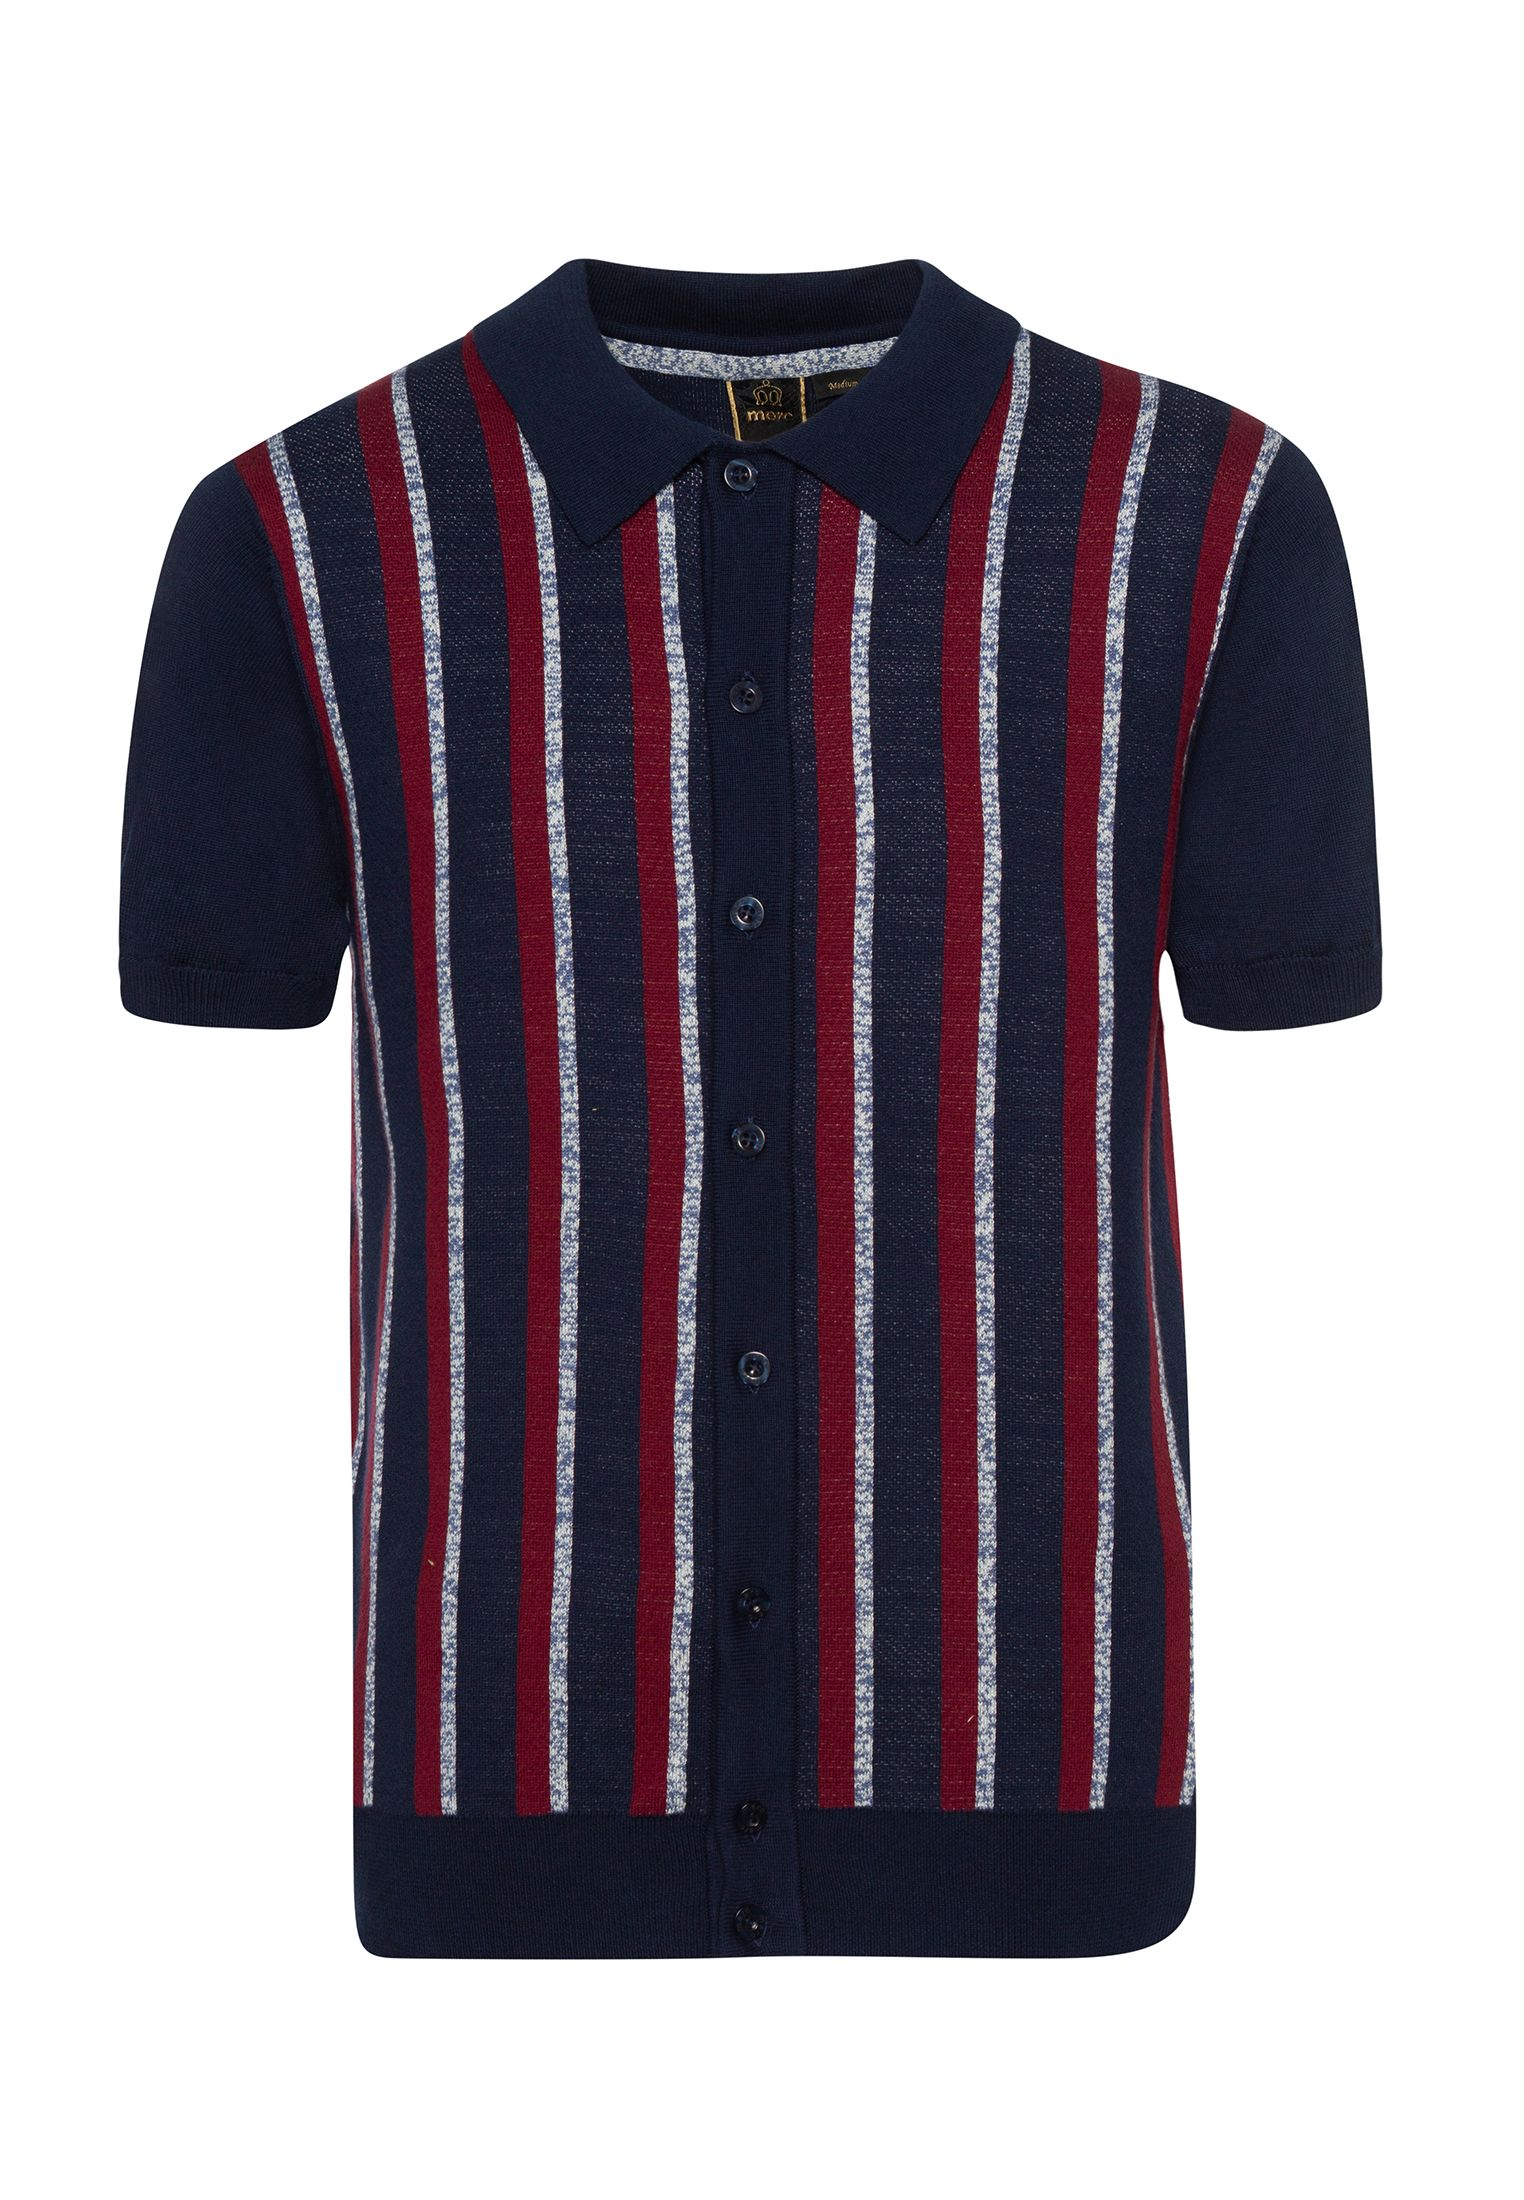 Wilmot Vertical Stripes Knit Polo In Navy